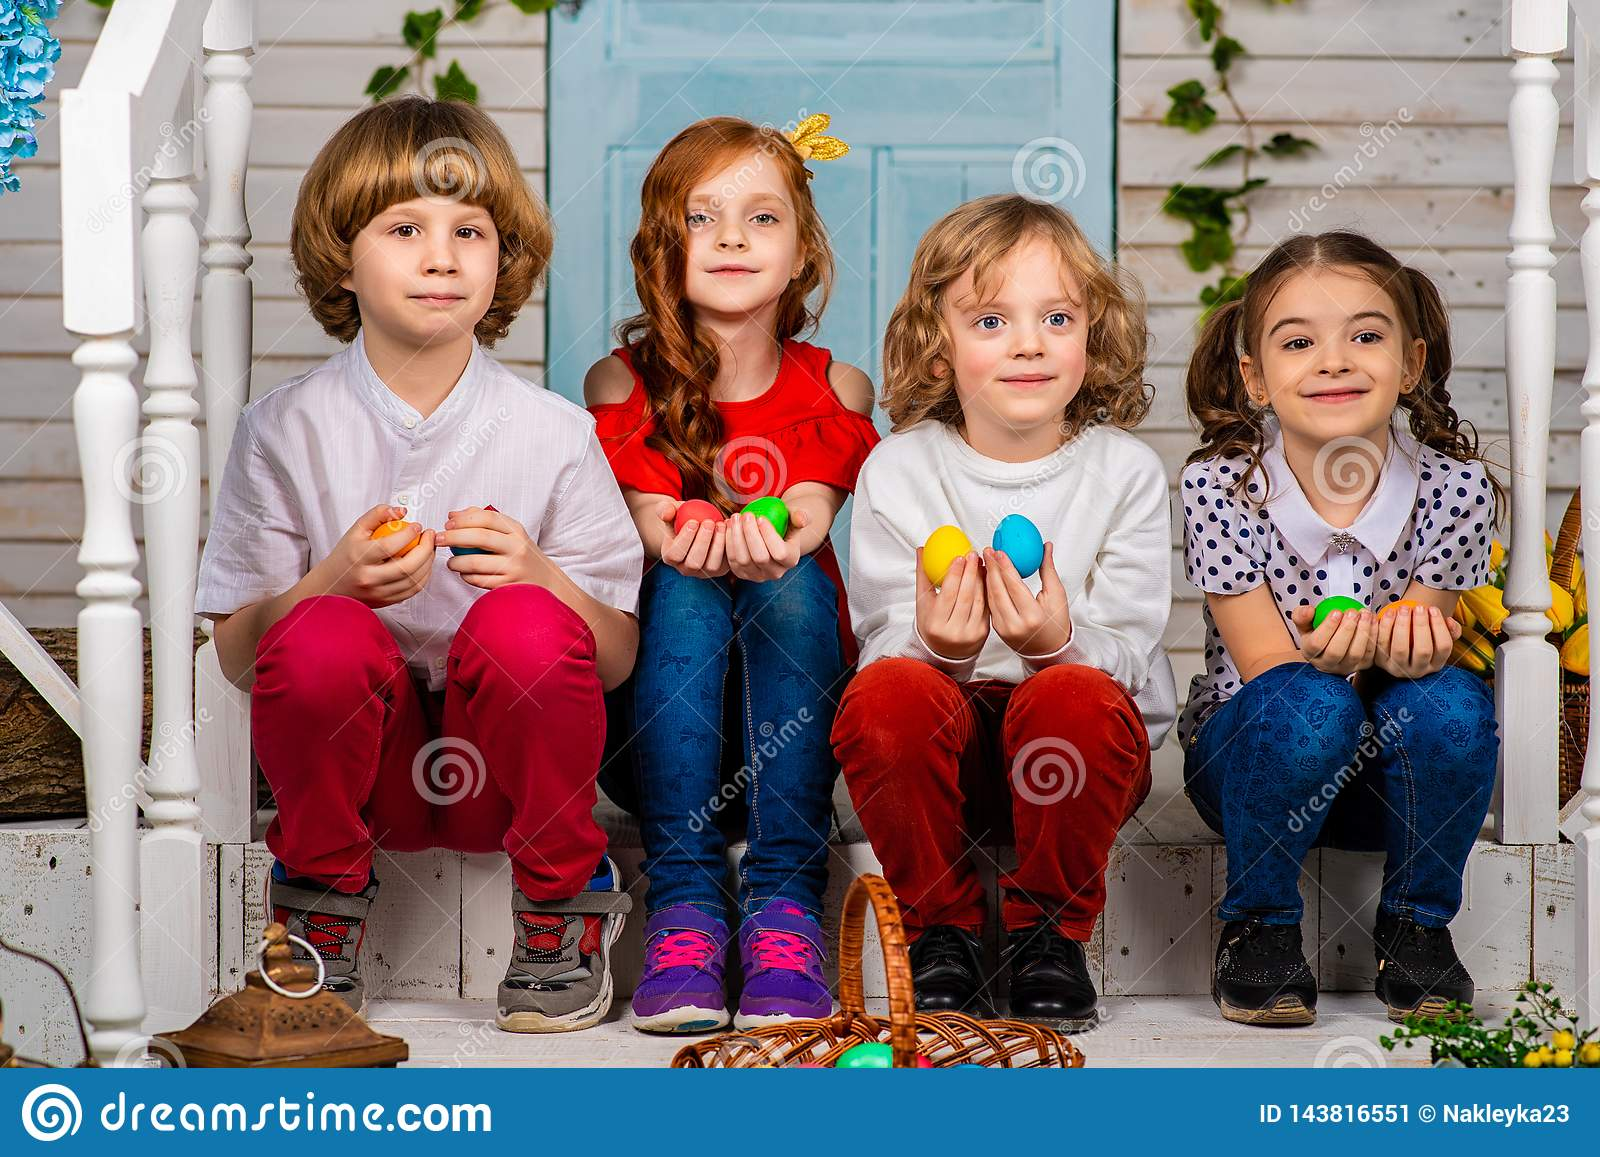 Four beautiful children, two boys and two girls stand on a wooden threshold and laugh